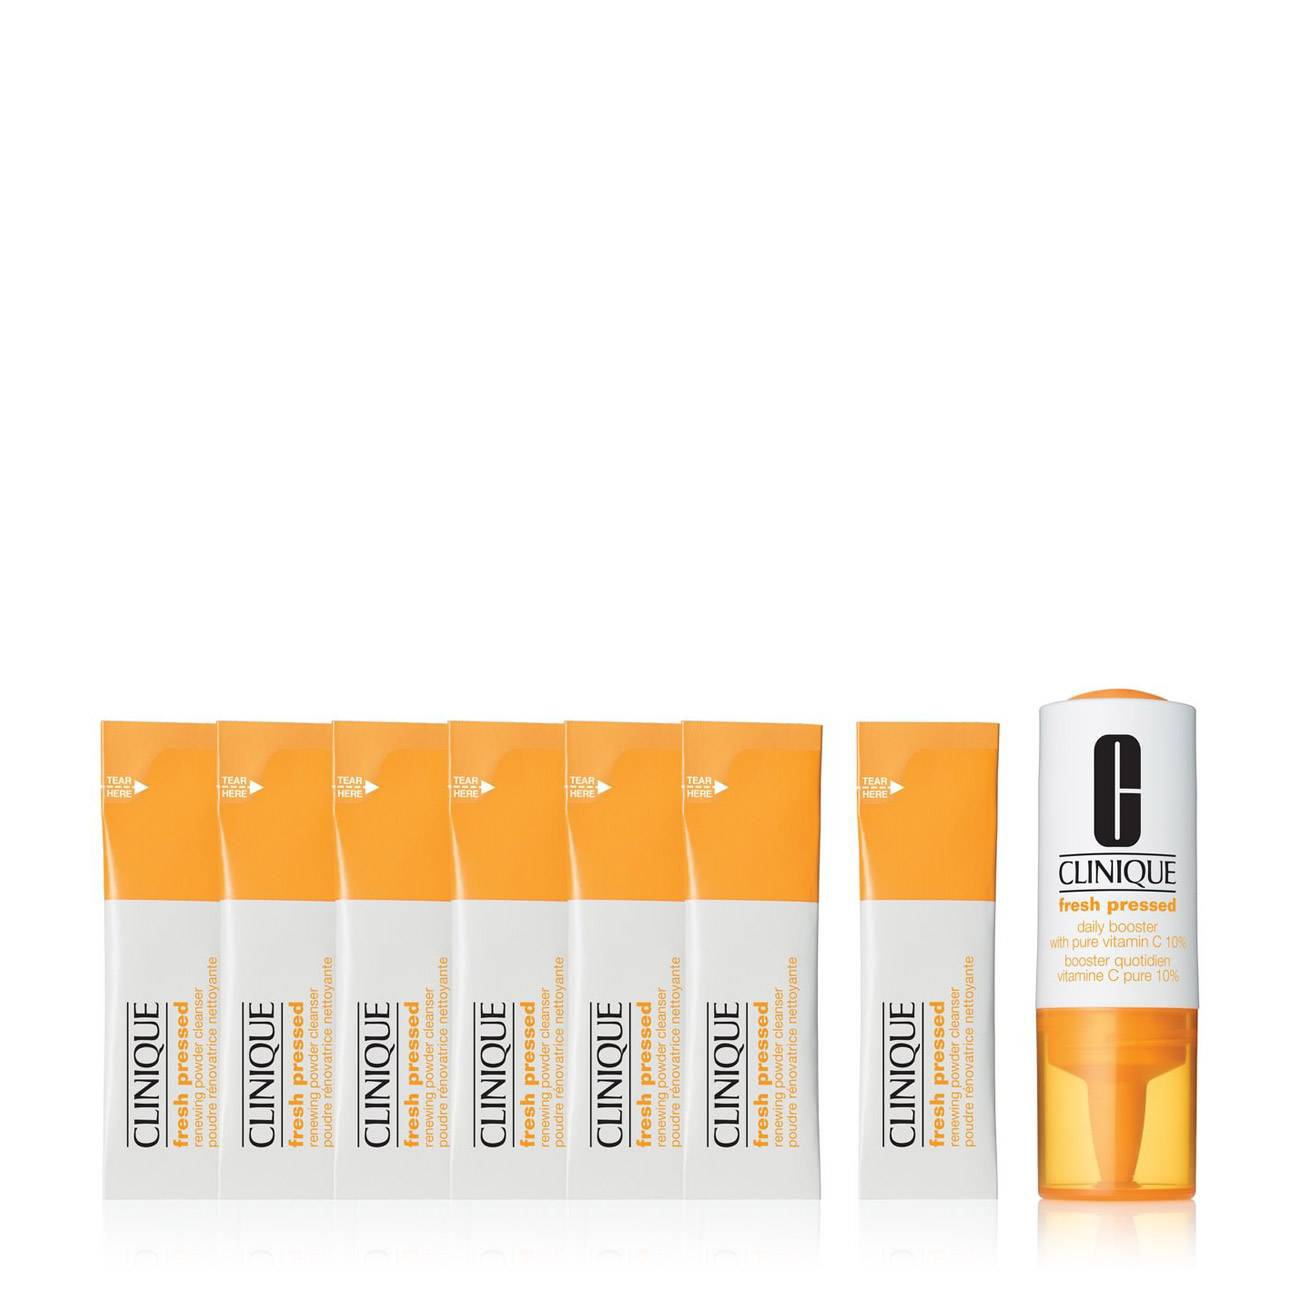 FRESH PRESSED 7 DAY SYSTEM WITH VITAMIN C: DAILY BOOSTER+RENEWAL POWDER CLEANSER 9 Ml